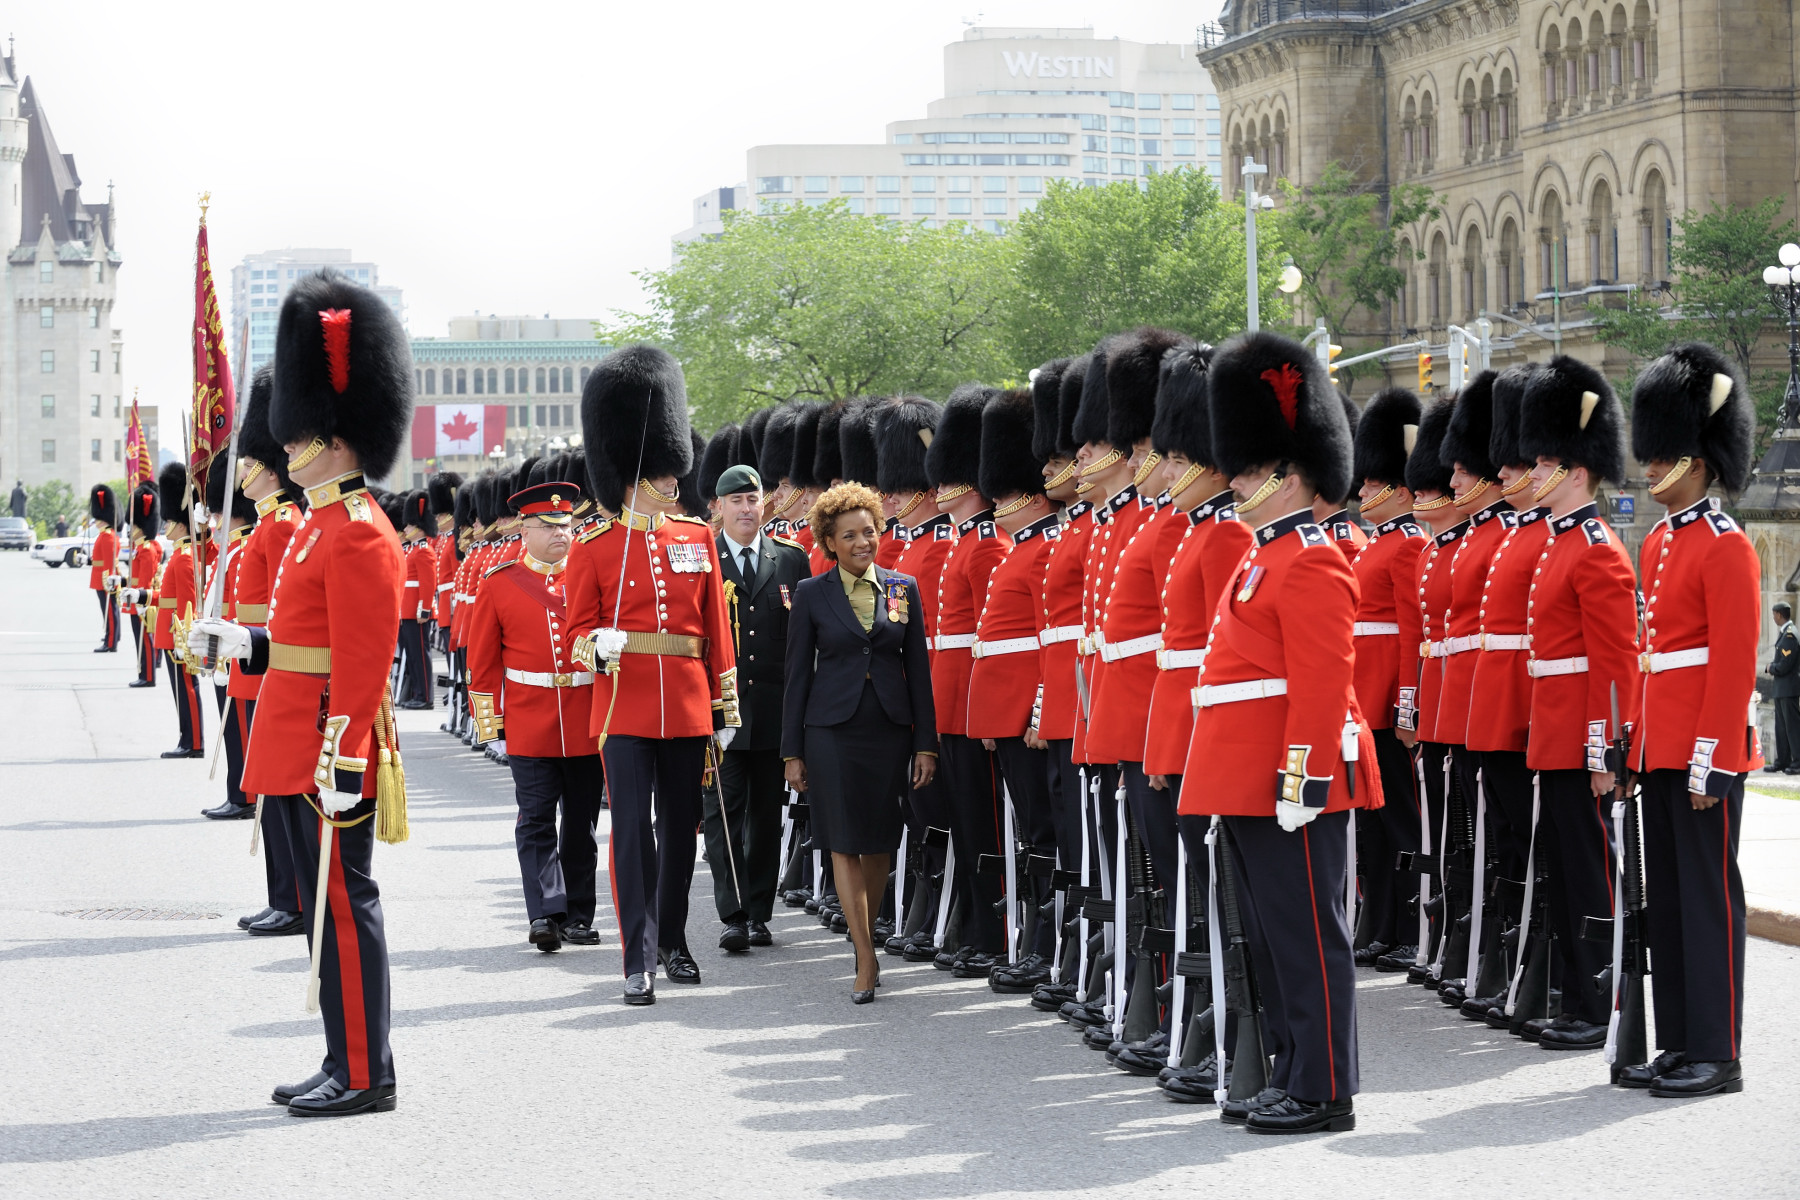 Her Excellency the Right Honourable Michaëlle Jean, Governor General and Commander-in-Chief of Canada, invited the public to join her for the annual Inspection of the Ceremonial Guard, on June 22, 2010, on Parliament Hill.